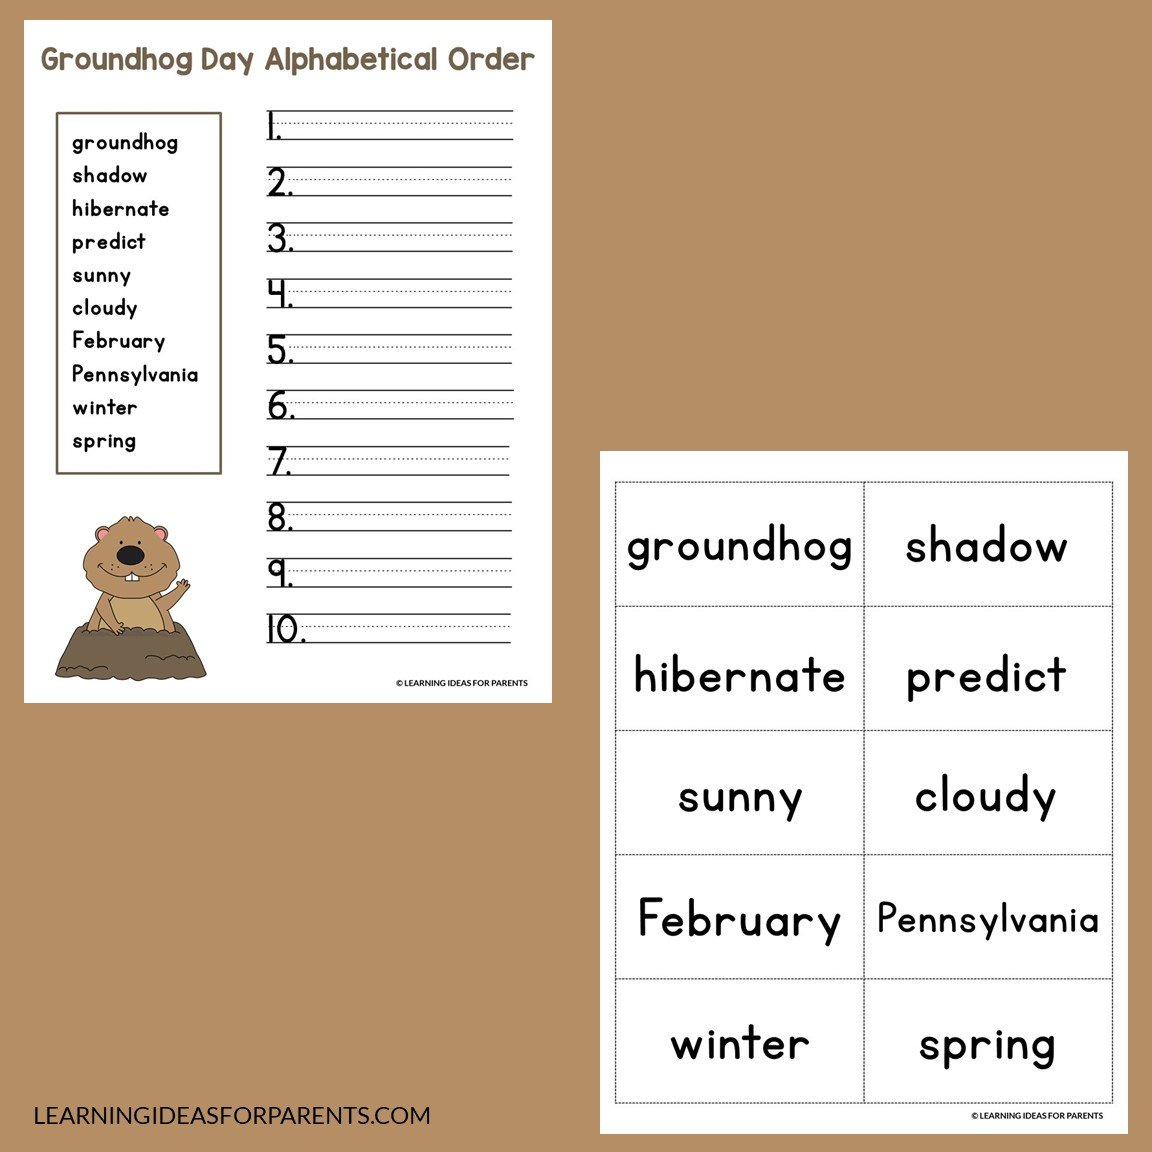 Groundhog Day ABC order free printable activity